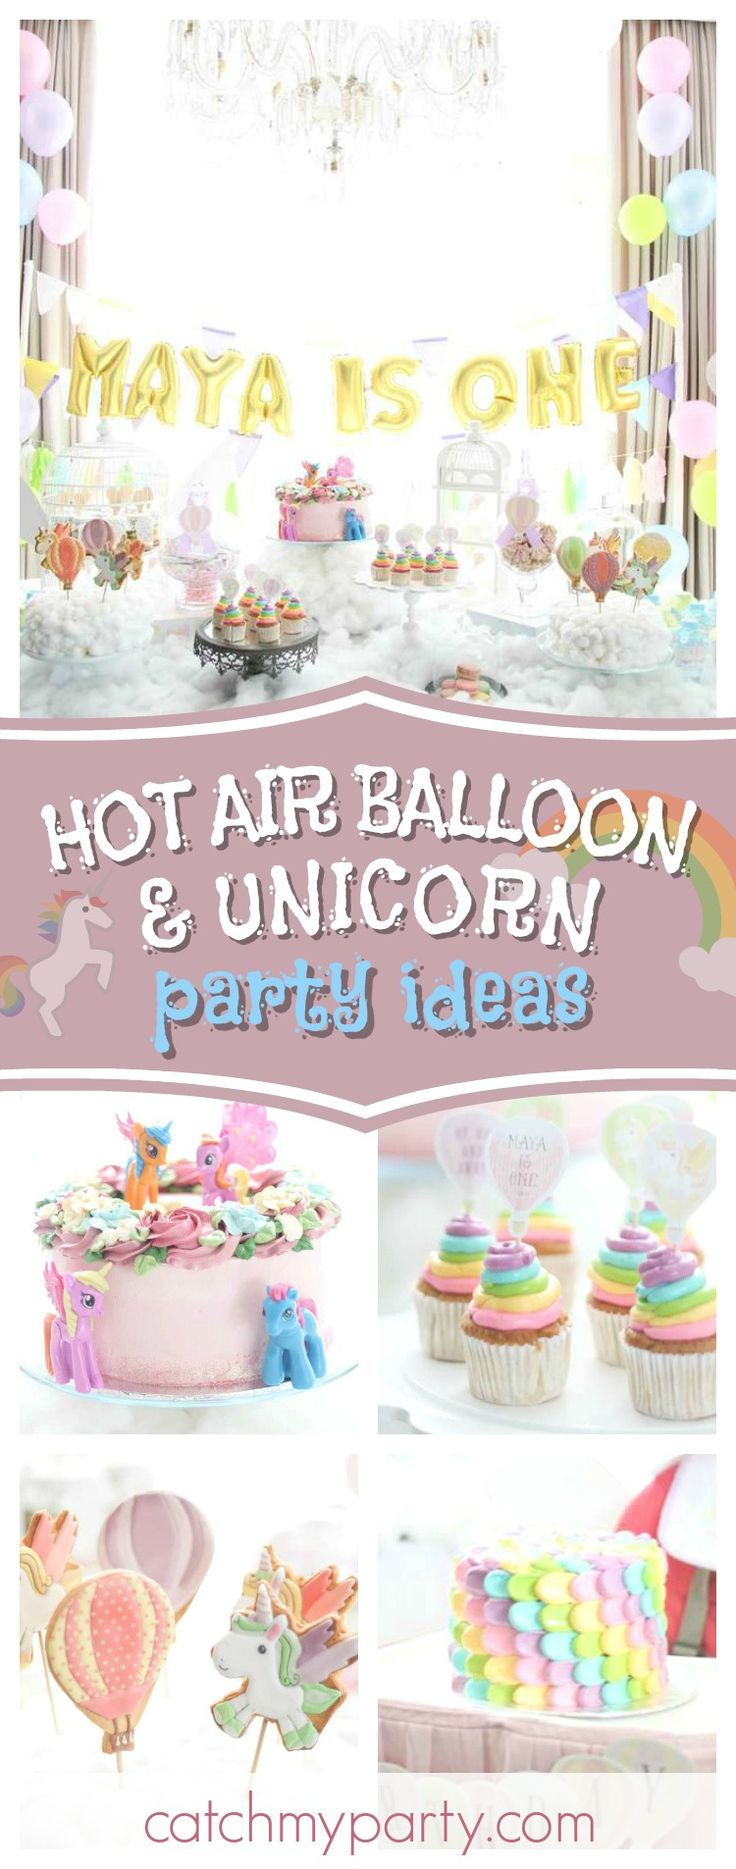 Take a look at this wonderful Hot Air Balloon and Unicorn 1st birthday party. The dessert table is stunning!! See more party ideas and share yours at CatchMyParty.com